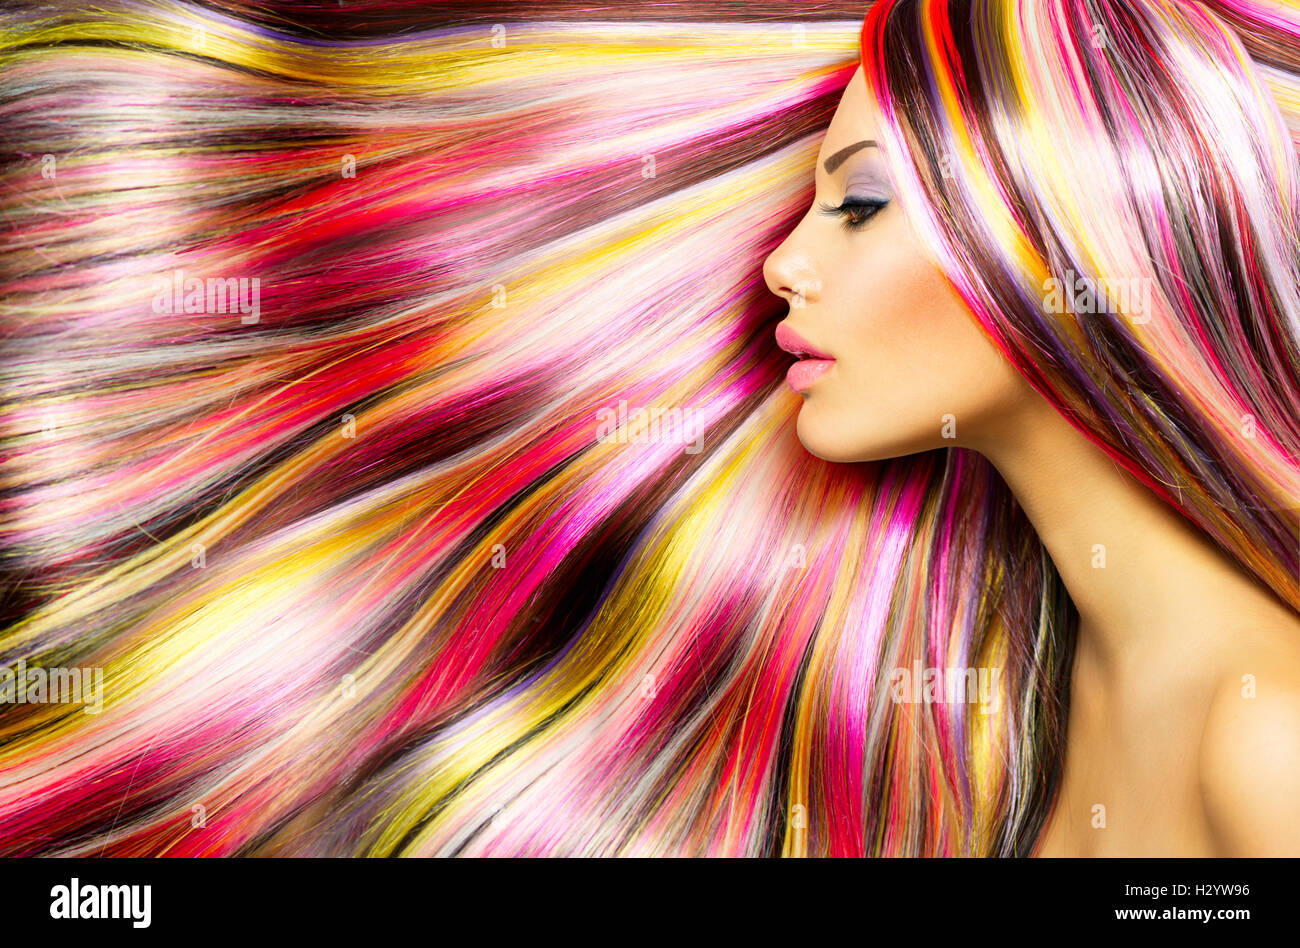 Beauty Fashion Model Girl with Colorful Dyed Hair Stock Photo ...